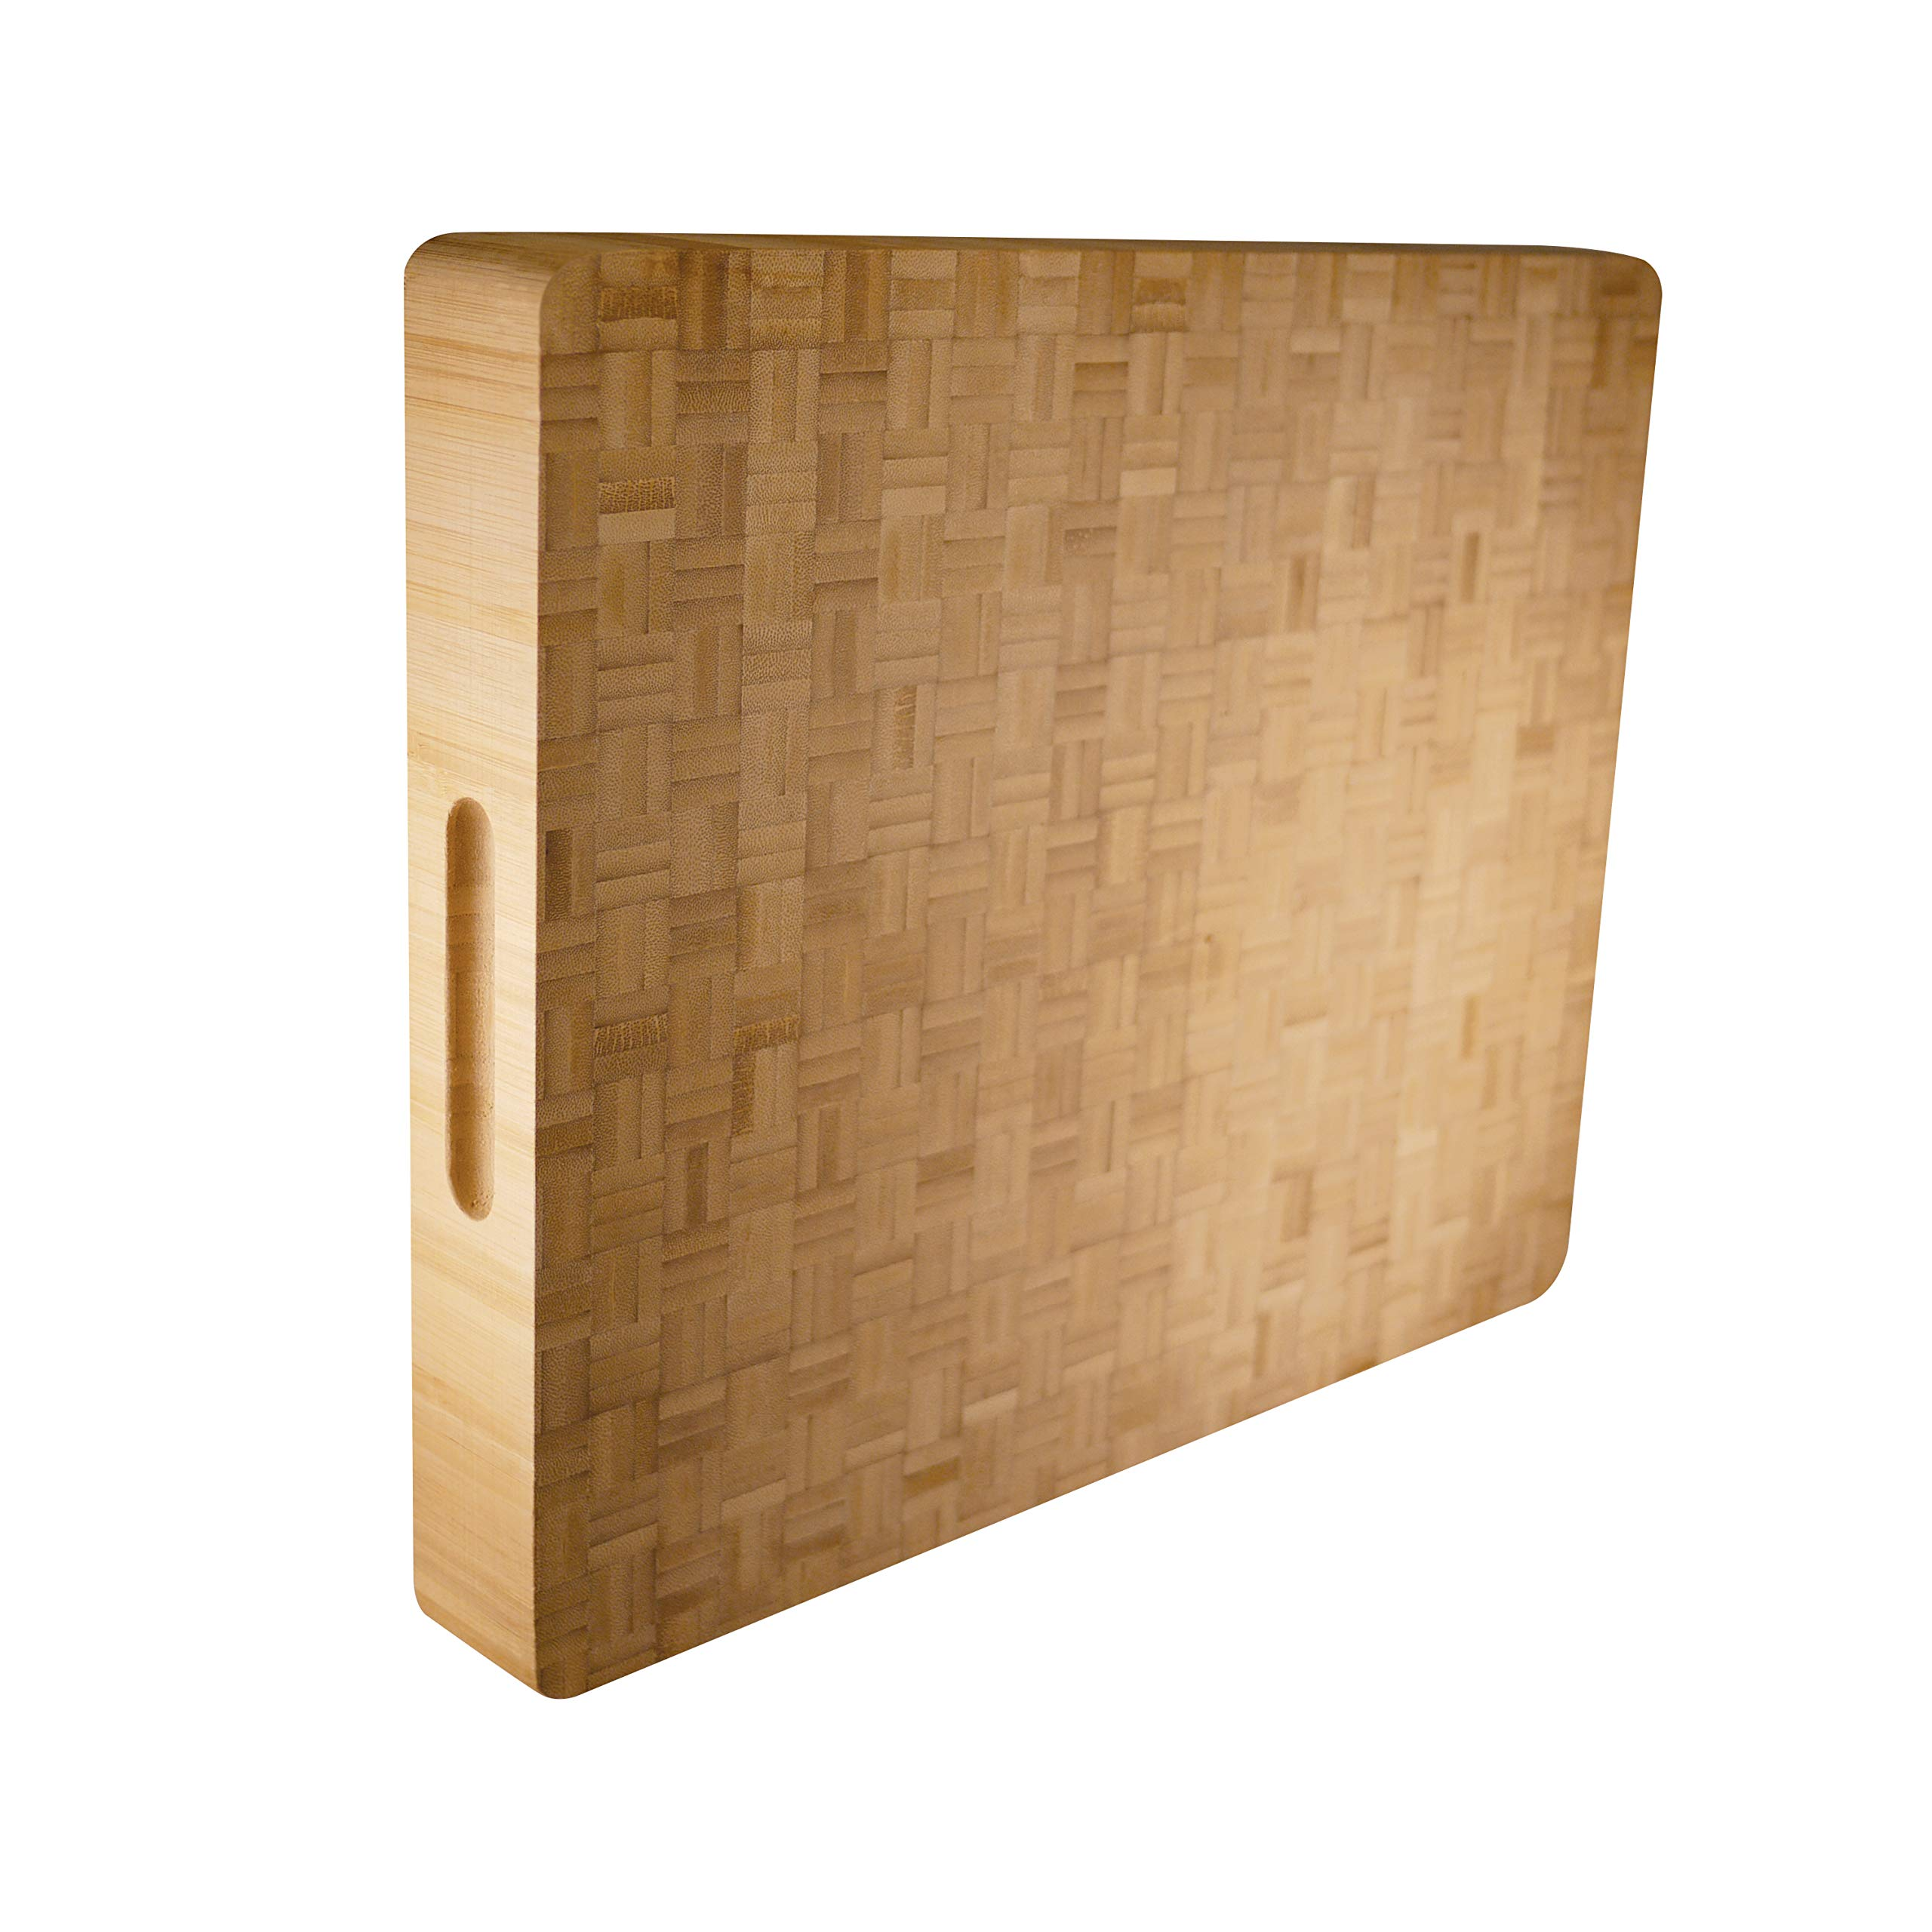 Pratico Kitchen Reversible Organic End Grain Butcher Chopping Block & Serving Tray - 16.5 x 13.5 x 2 inches